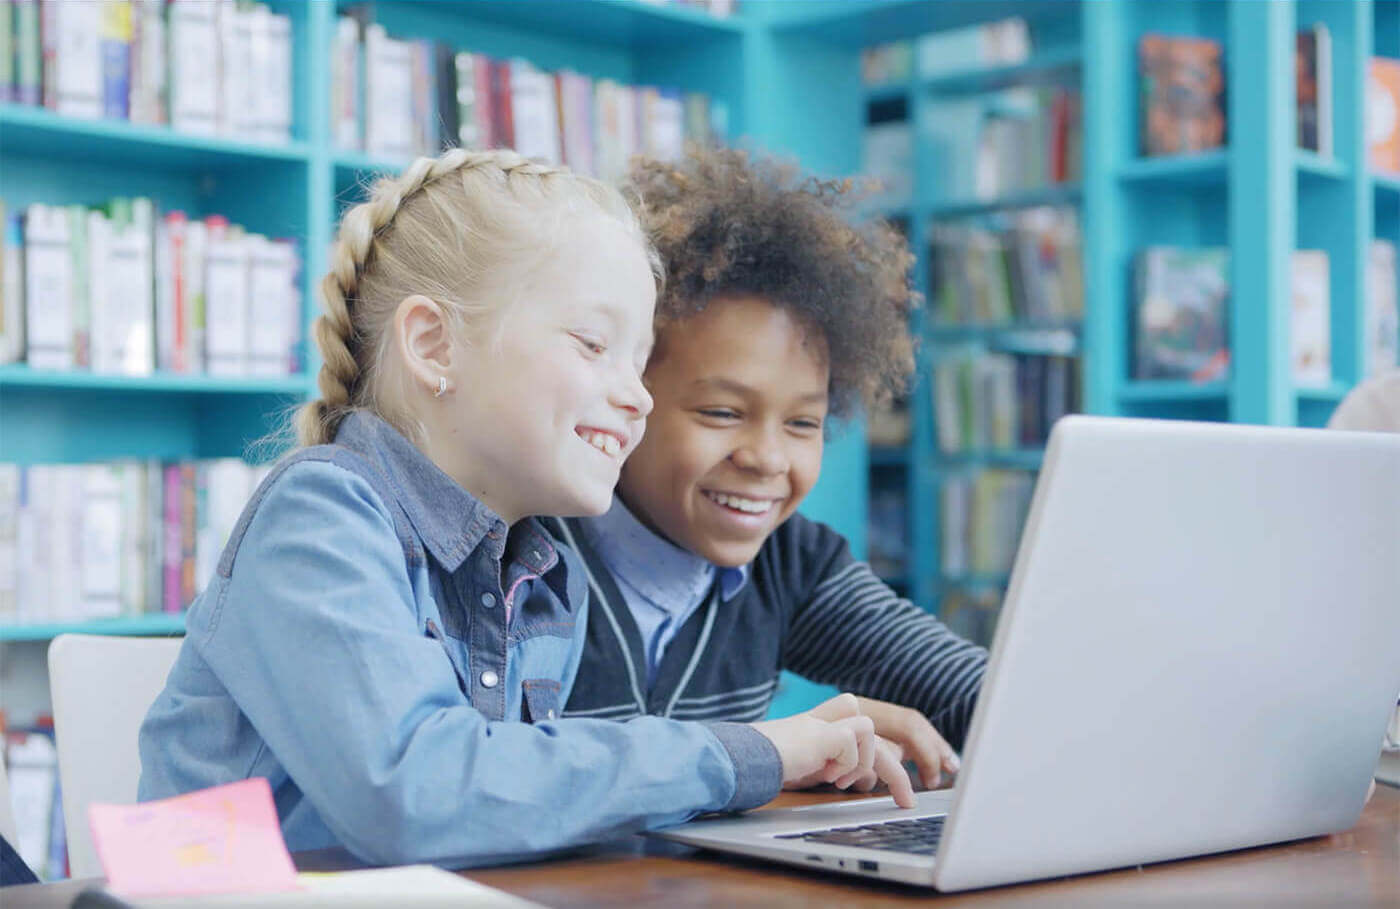 Two students smiling while using a laptop in a library